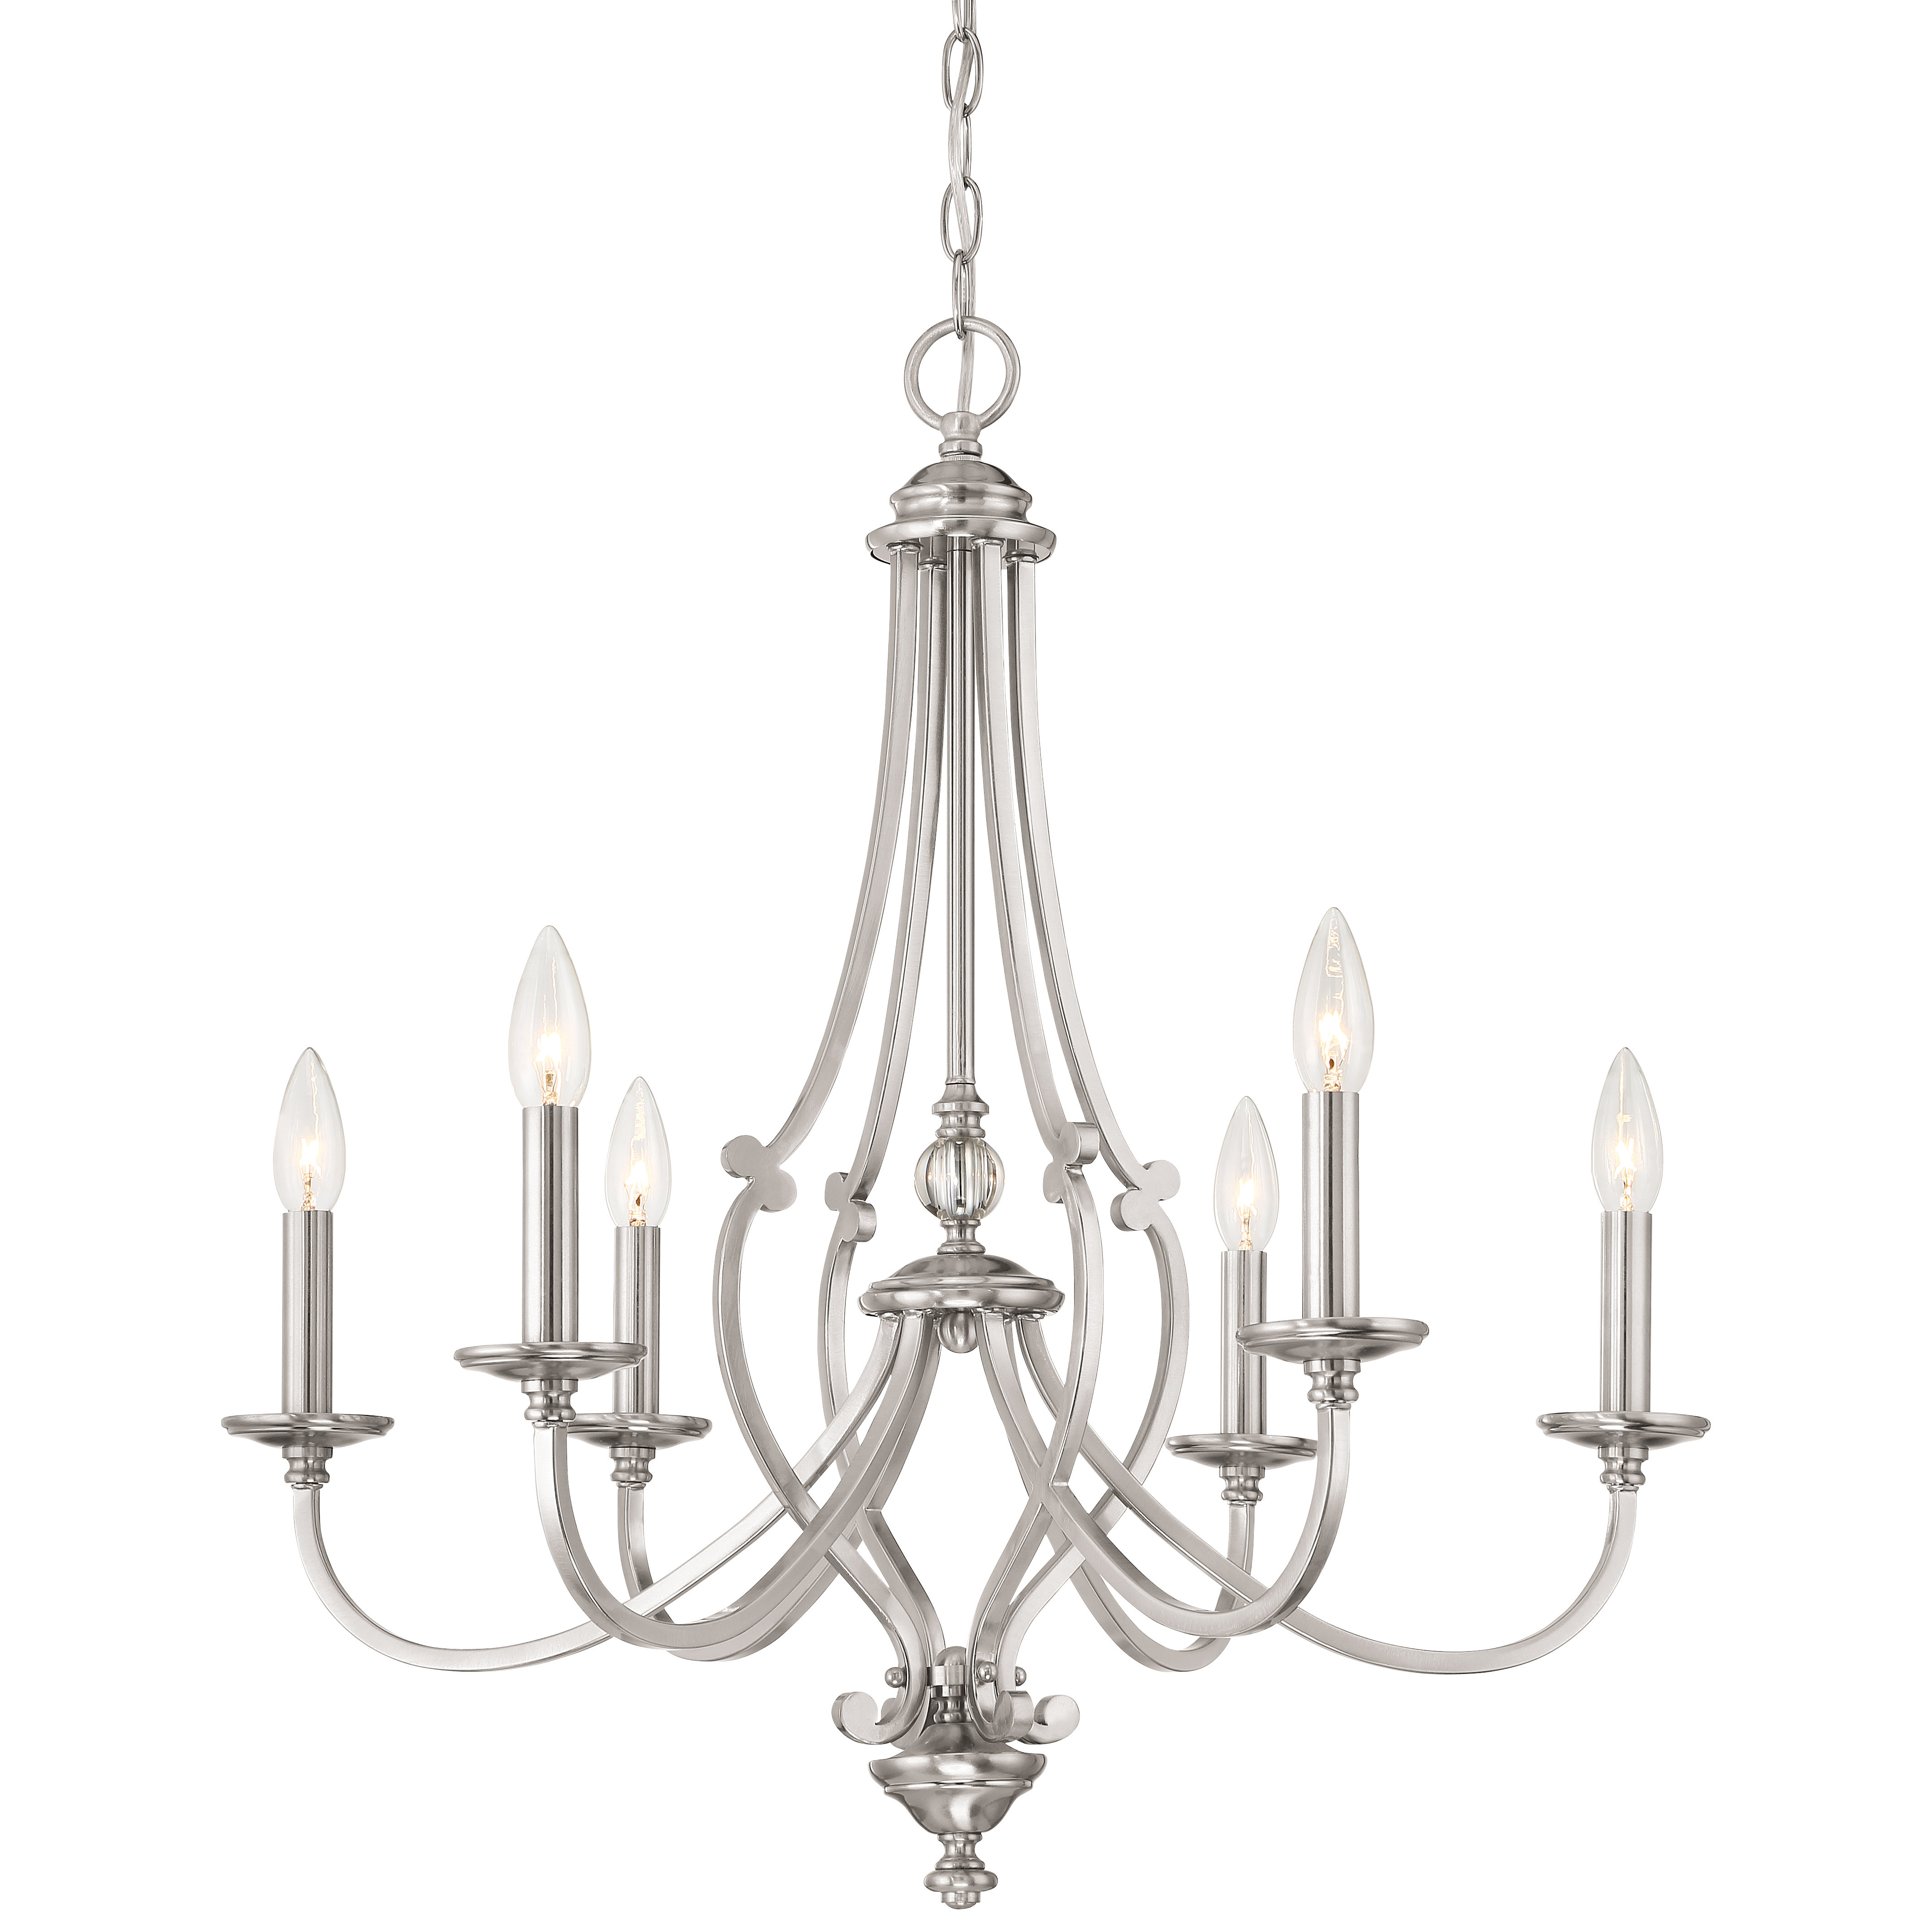 Well Liked Audane 6 Light Chandelier With Berger 5 Light Candle Style Chandeliers (View 15 of 20)